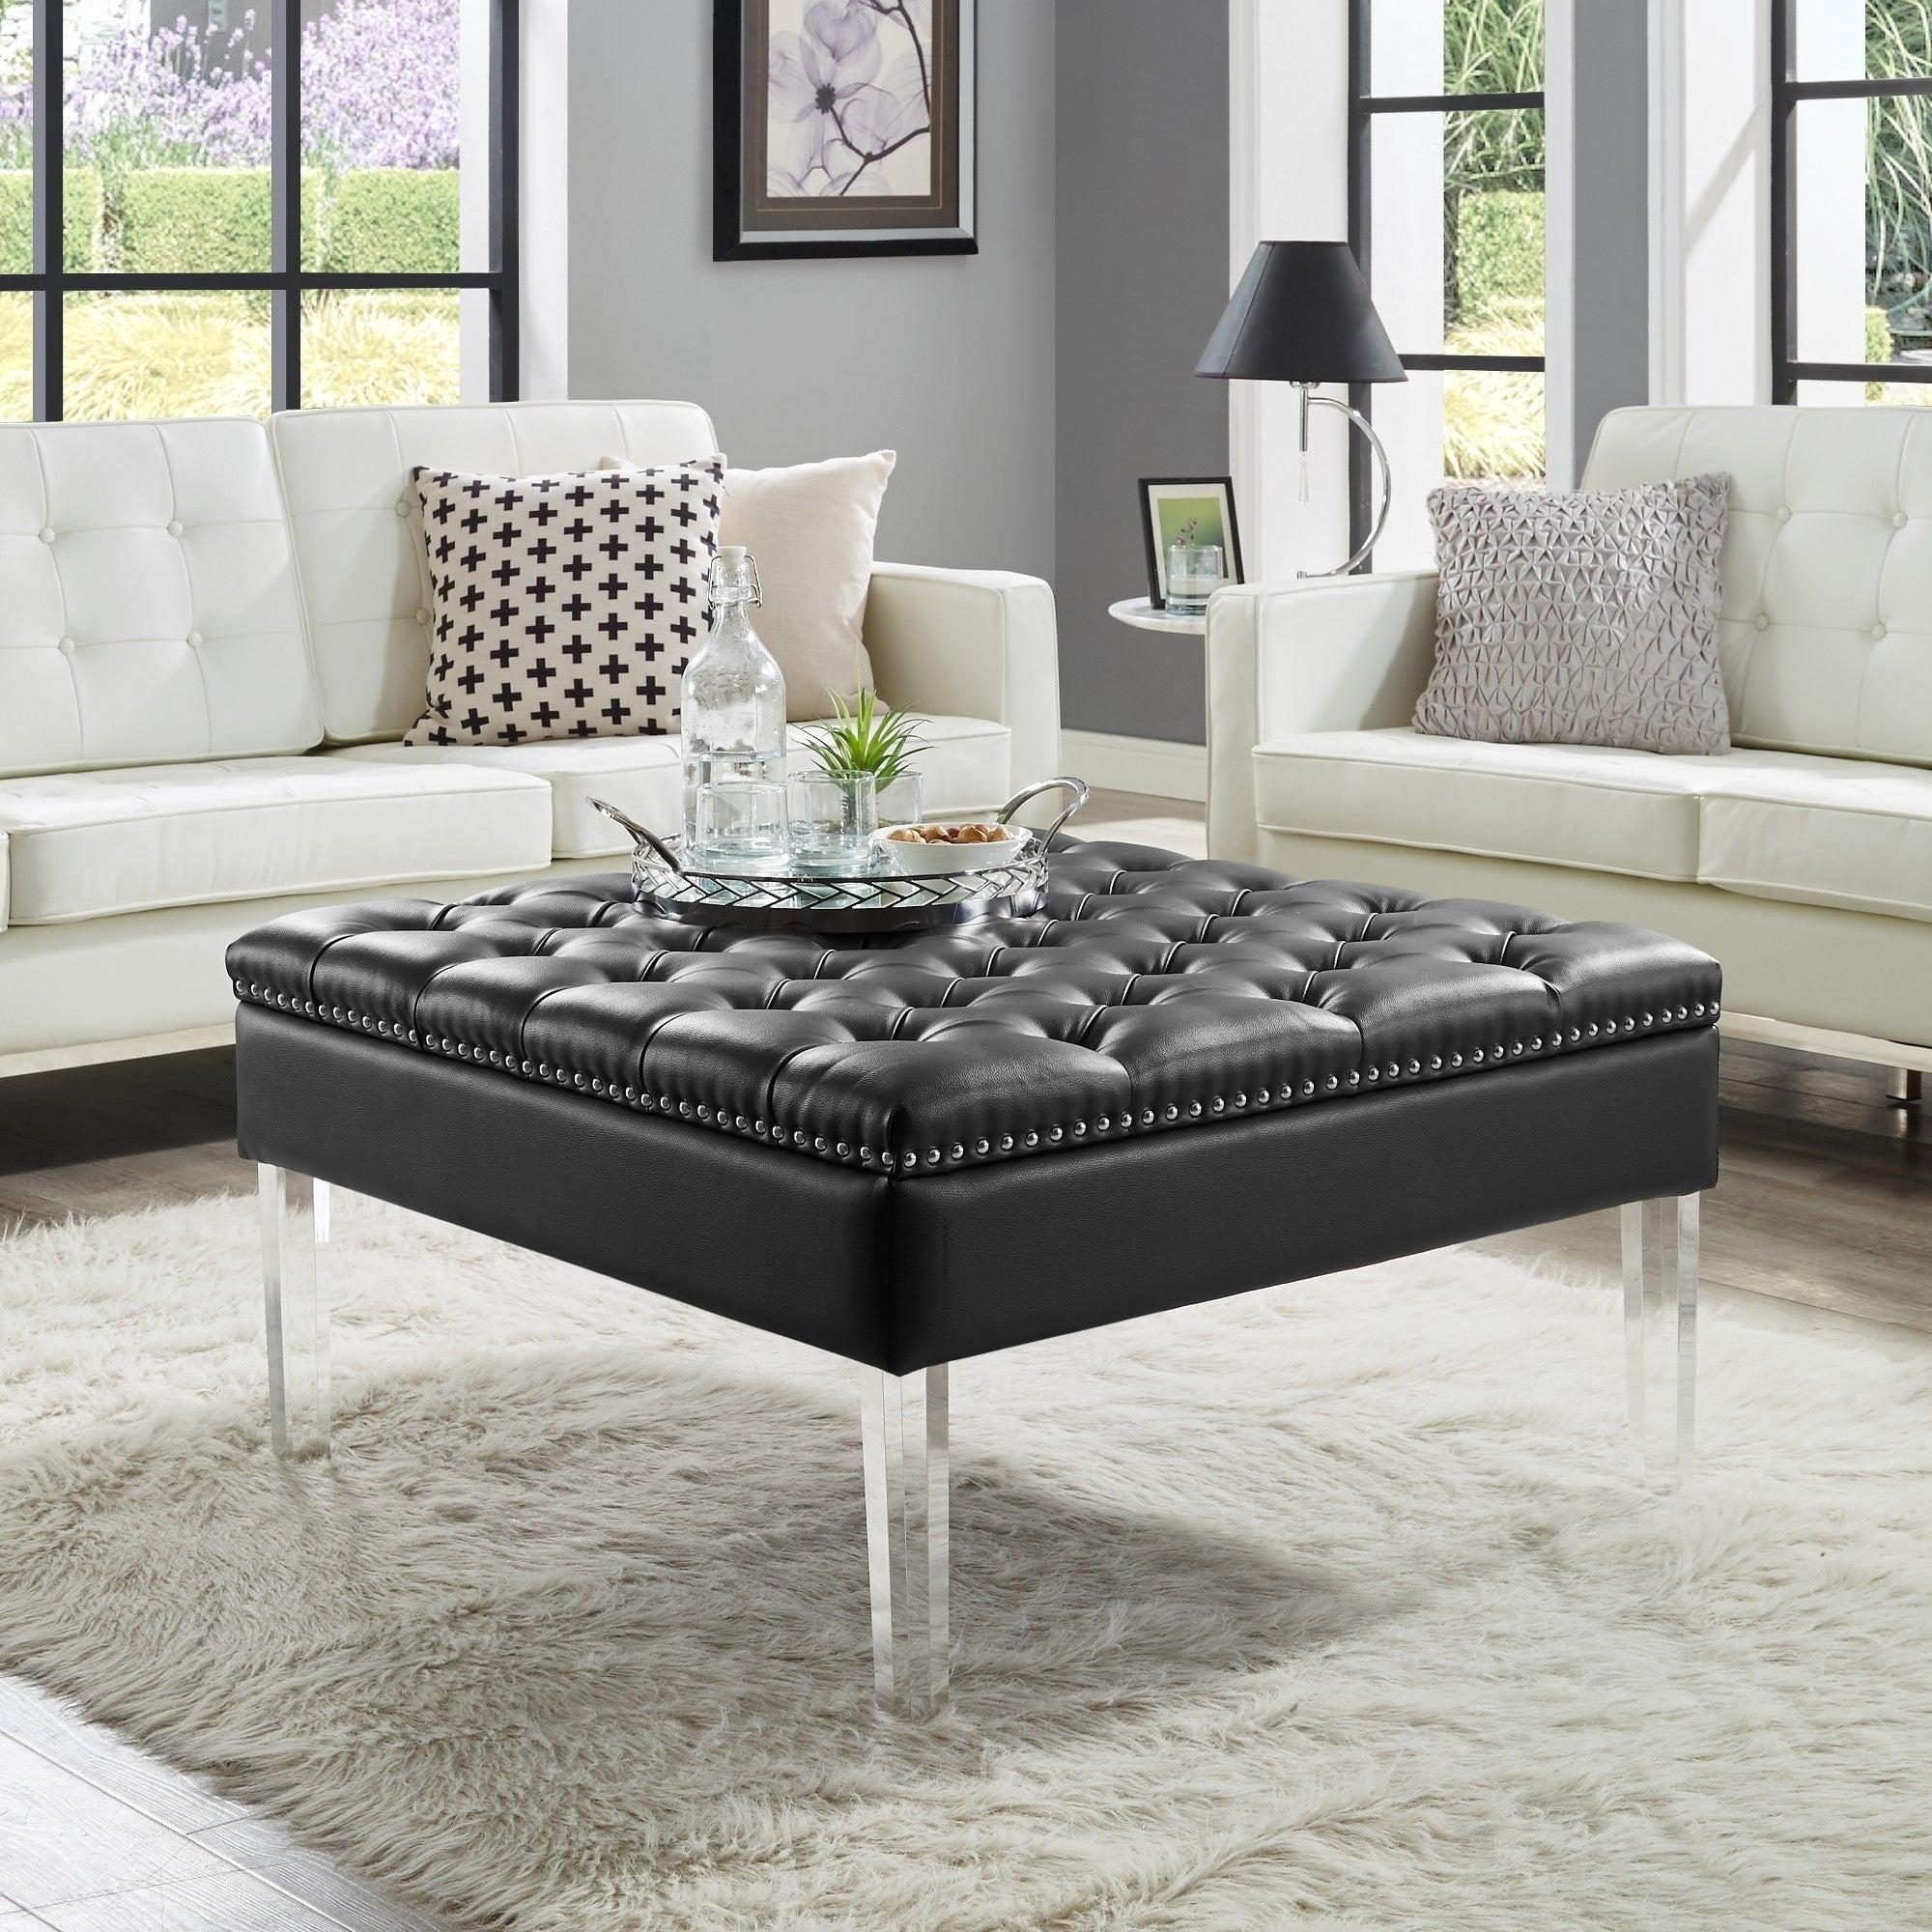 - Shop Vivian Leather Oversized Button-tufted Ottoman Coffee Table -  Overstock - 16535148 - Espresso